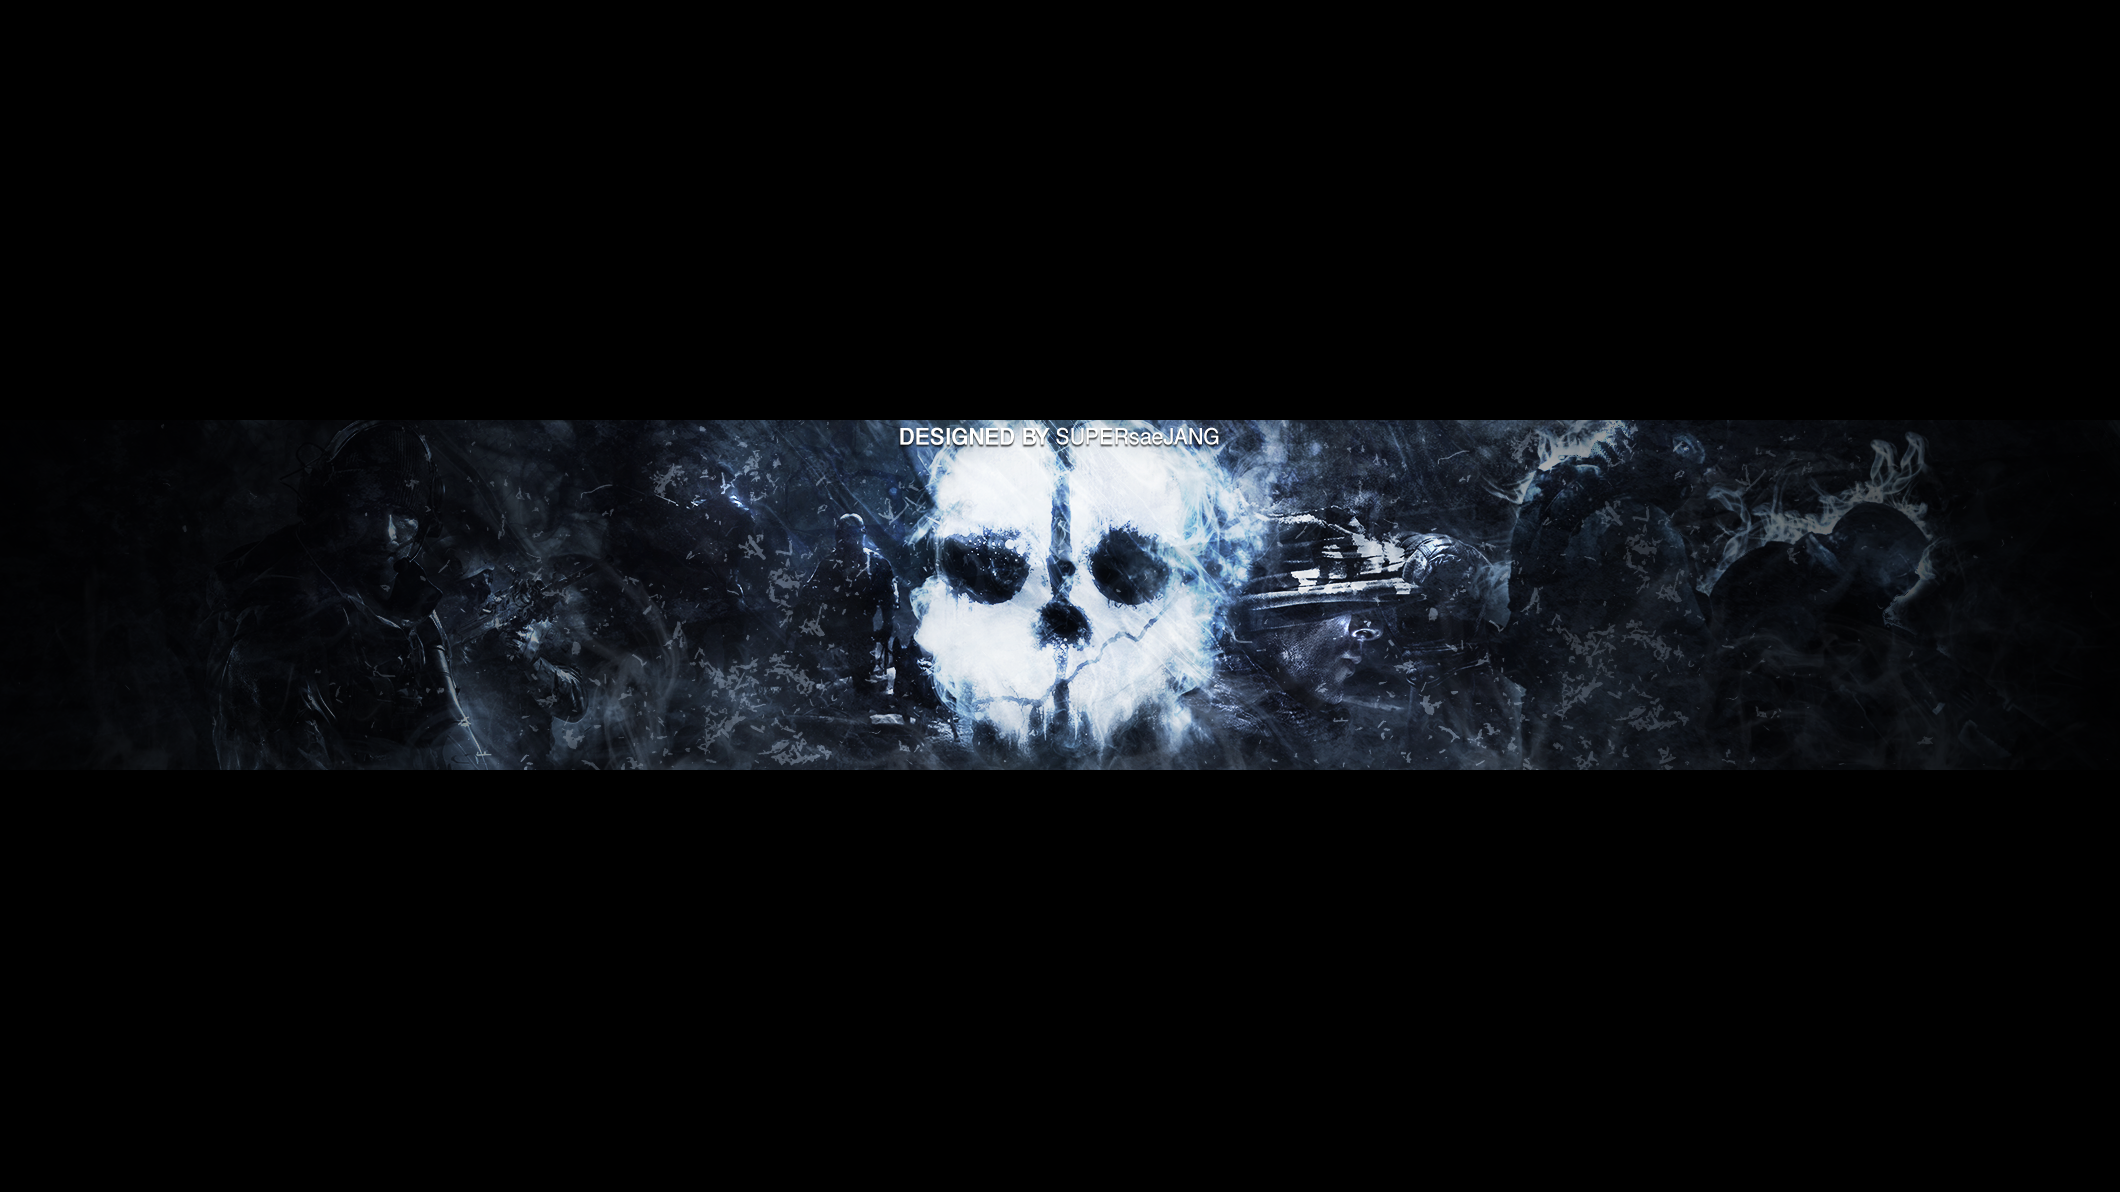 http://orig07.deviantart.net/0981/f/2013/123/7/9/call_of_duty_ghosts__onechannel__youtube__bg_by_supersaejang-d640kya.png